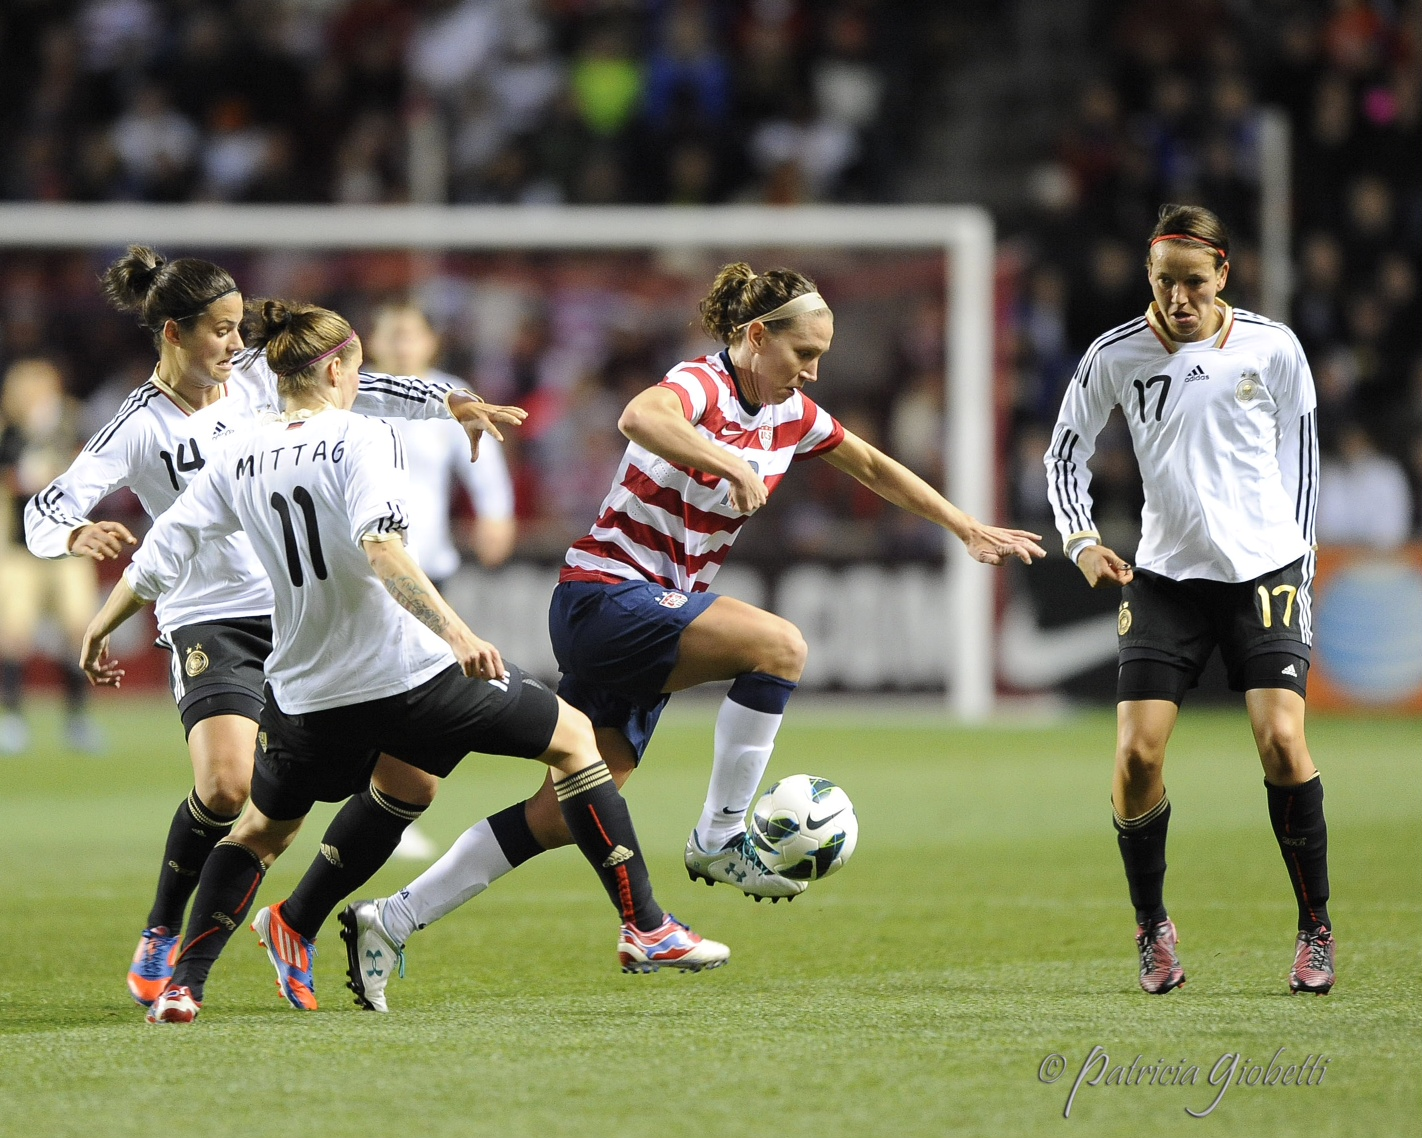 Lauren Cheney (center, with ball) dribbles avoids tackles from Germany players. (Copyright Patricia Giobetti | http://www.printroom.com/pro/psgiobetti)